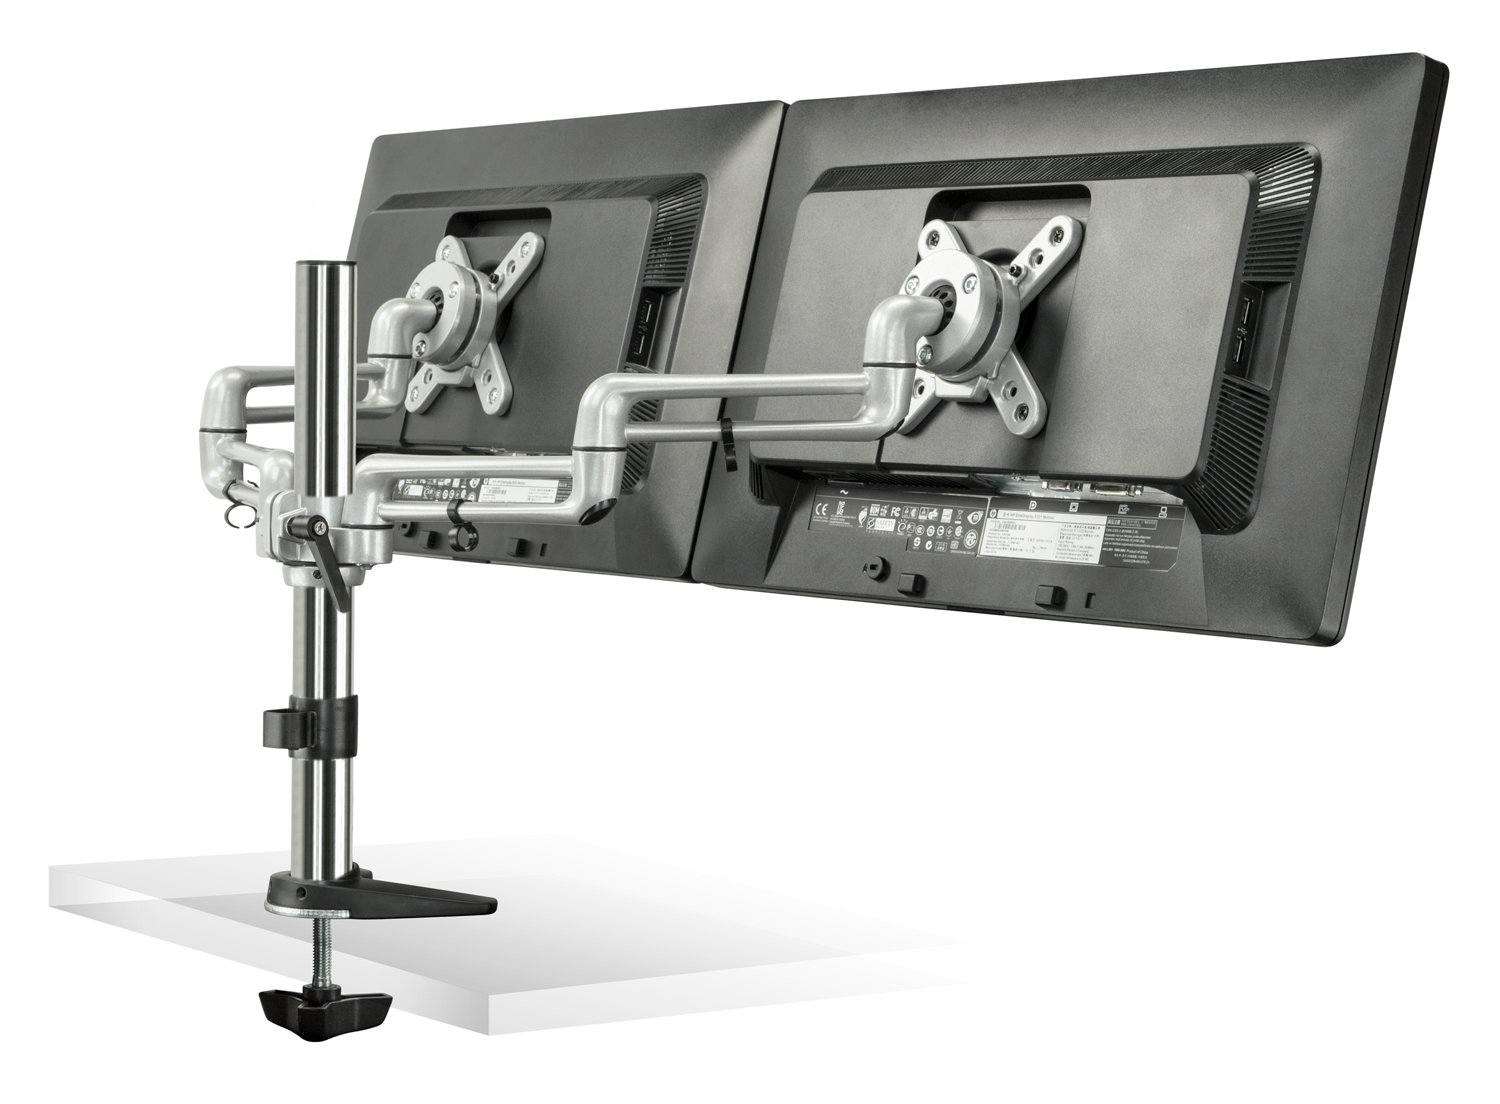 Mount-It! MI-732 Dual Monitor Office Desk Stand Mount Bracket with Clamp and Grommet Base for LCD LED Computer Monitors, Full-Motion Articulating Tilting 35.2 lbs Capacity, Up to 27 inch Black/Silver by Mount-It! (Image #2)